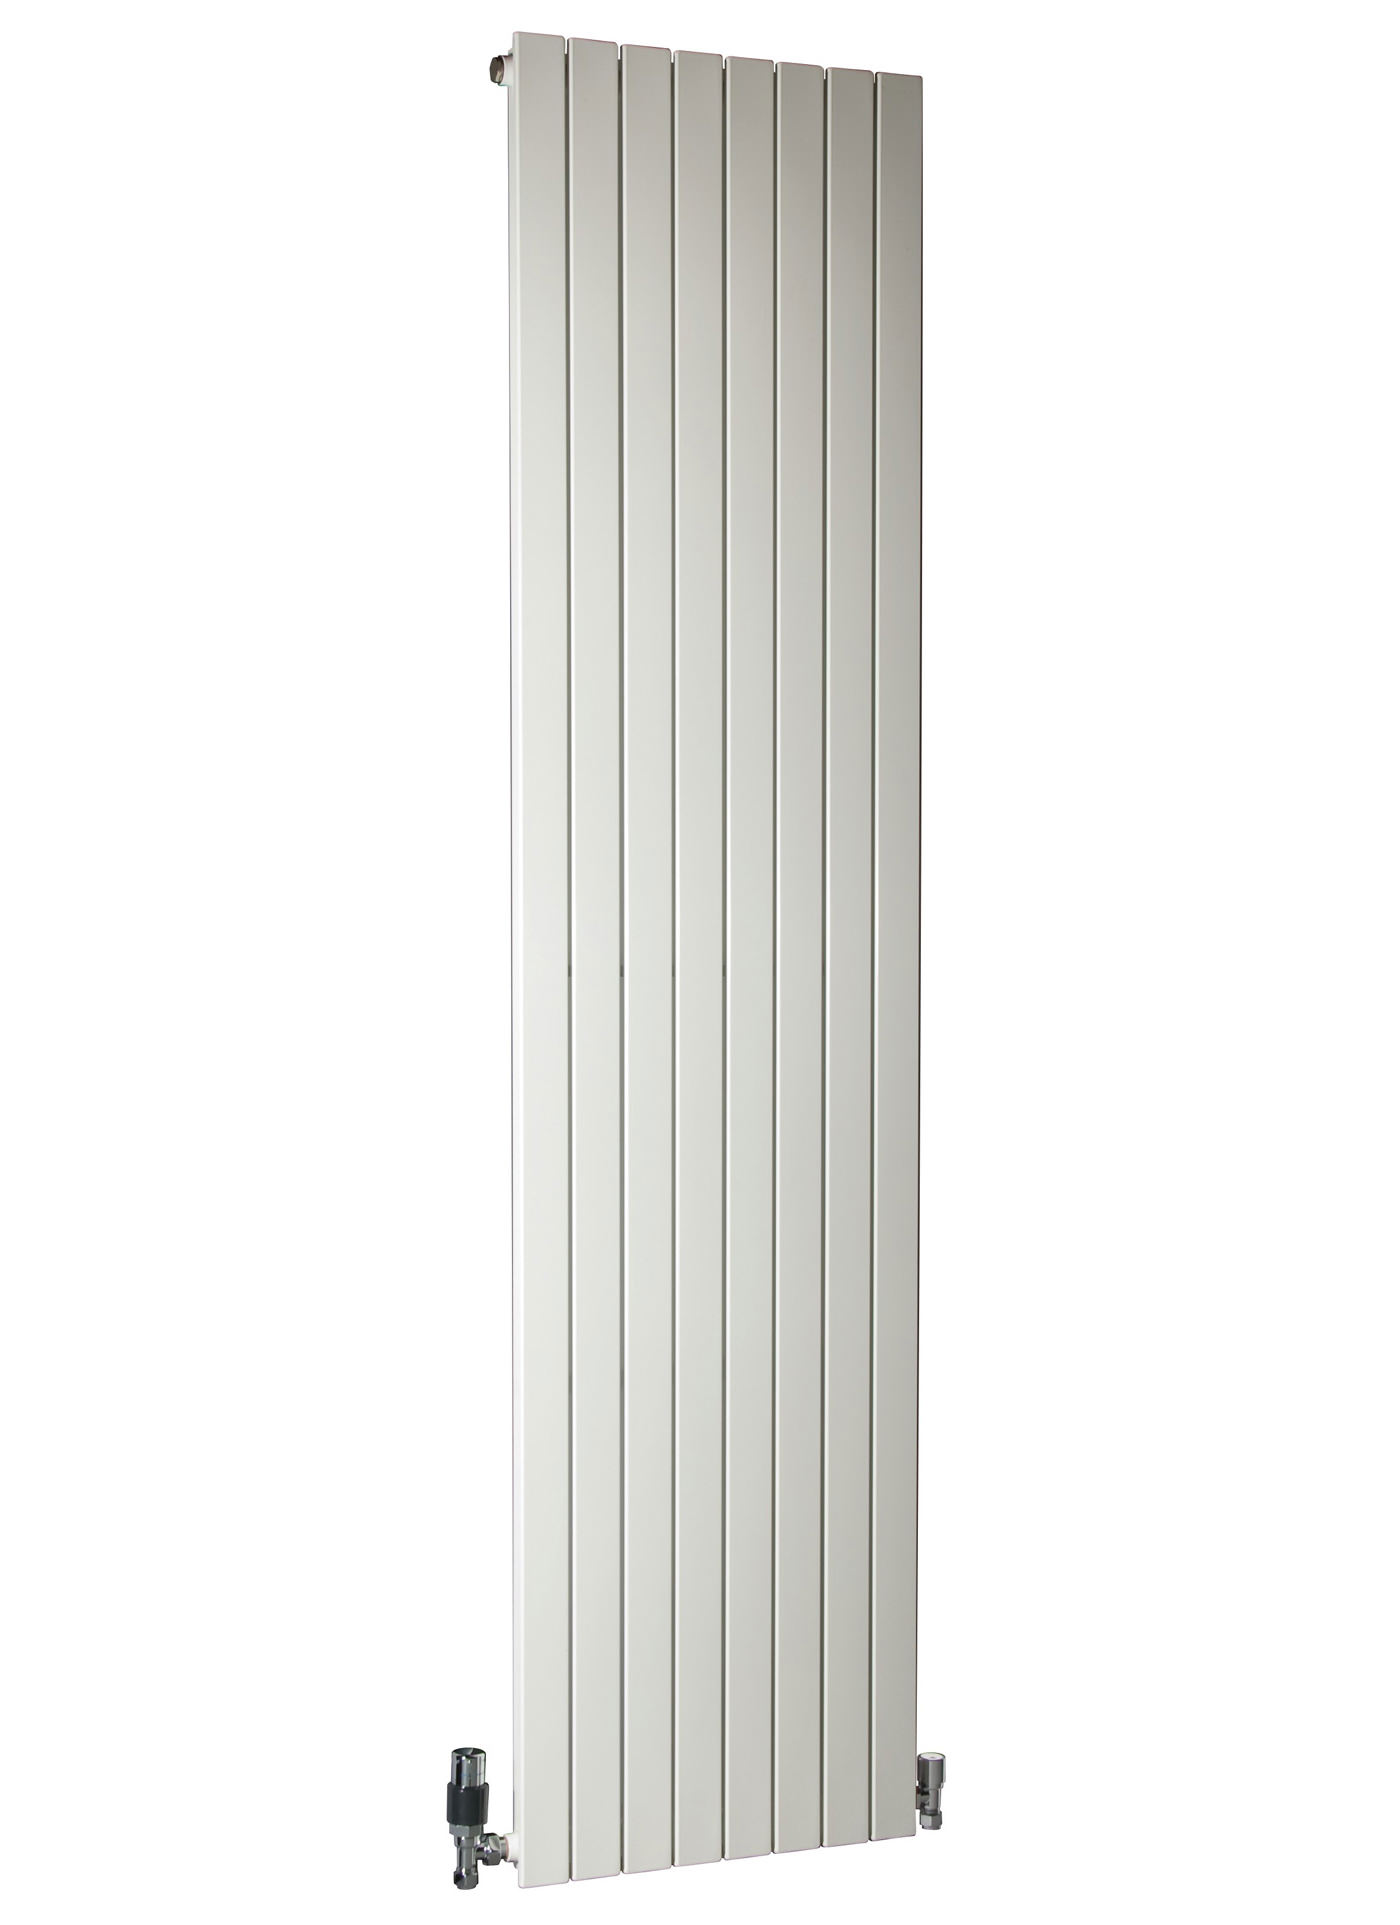 dq heating rt 215 x 1800mm vertical 4 section radiator. Black Bedroom Furniture Sets. Home Design Ideas